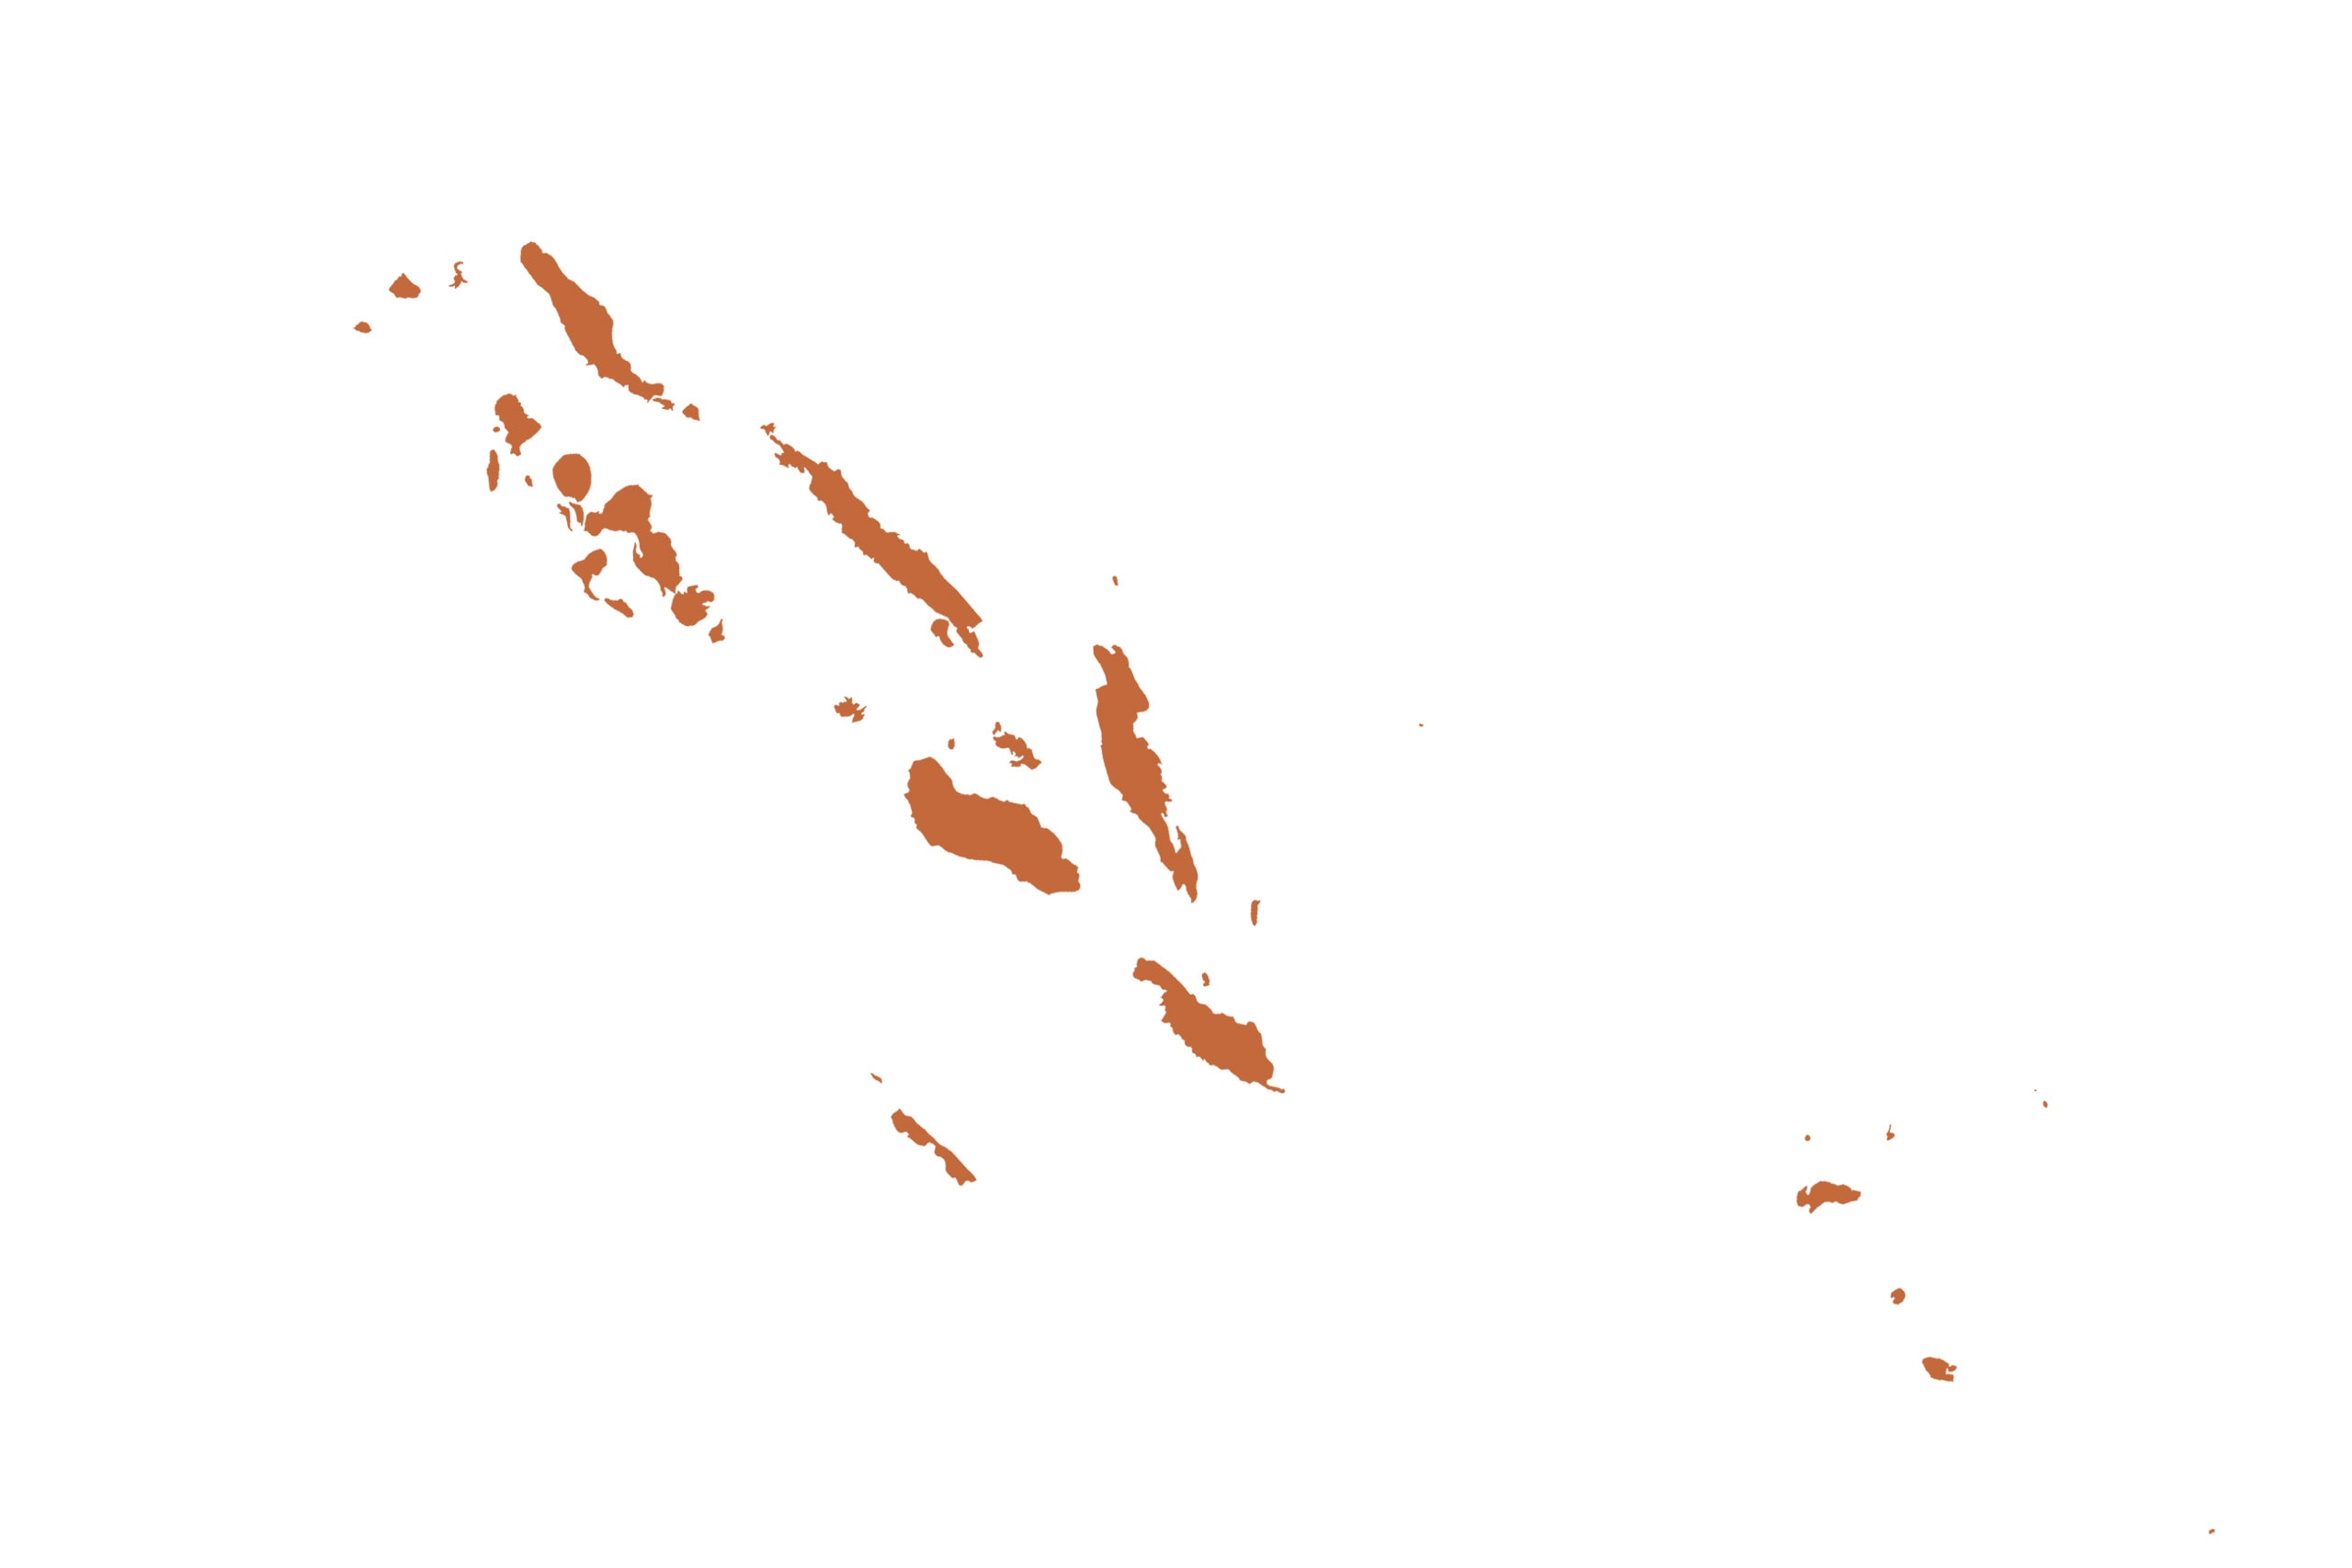 Solomon Islands map in orange from list of missing countries for 1 Earth City Portrait Photography Project aka NYChildren by Danny Goldfield.